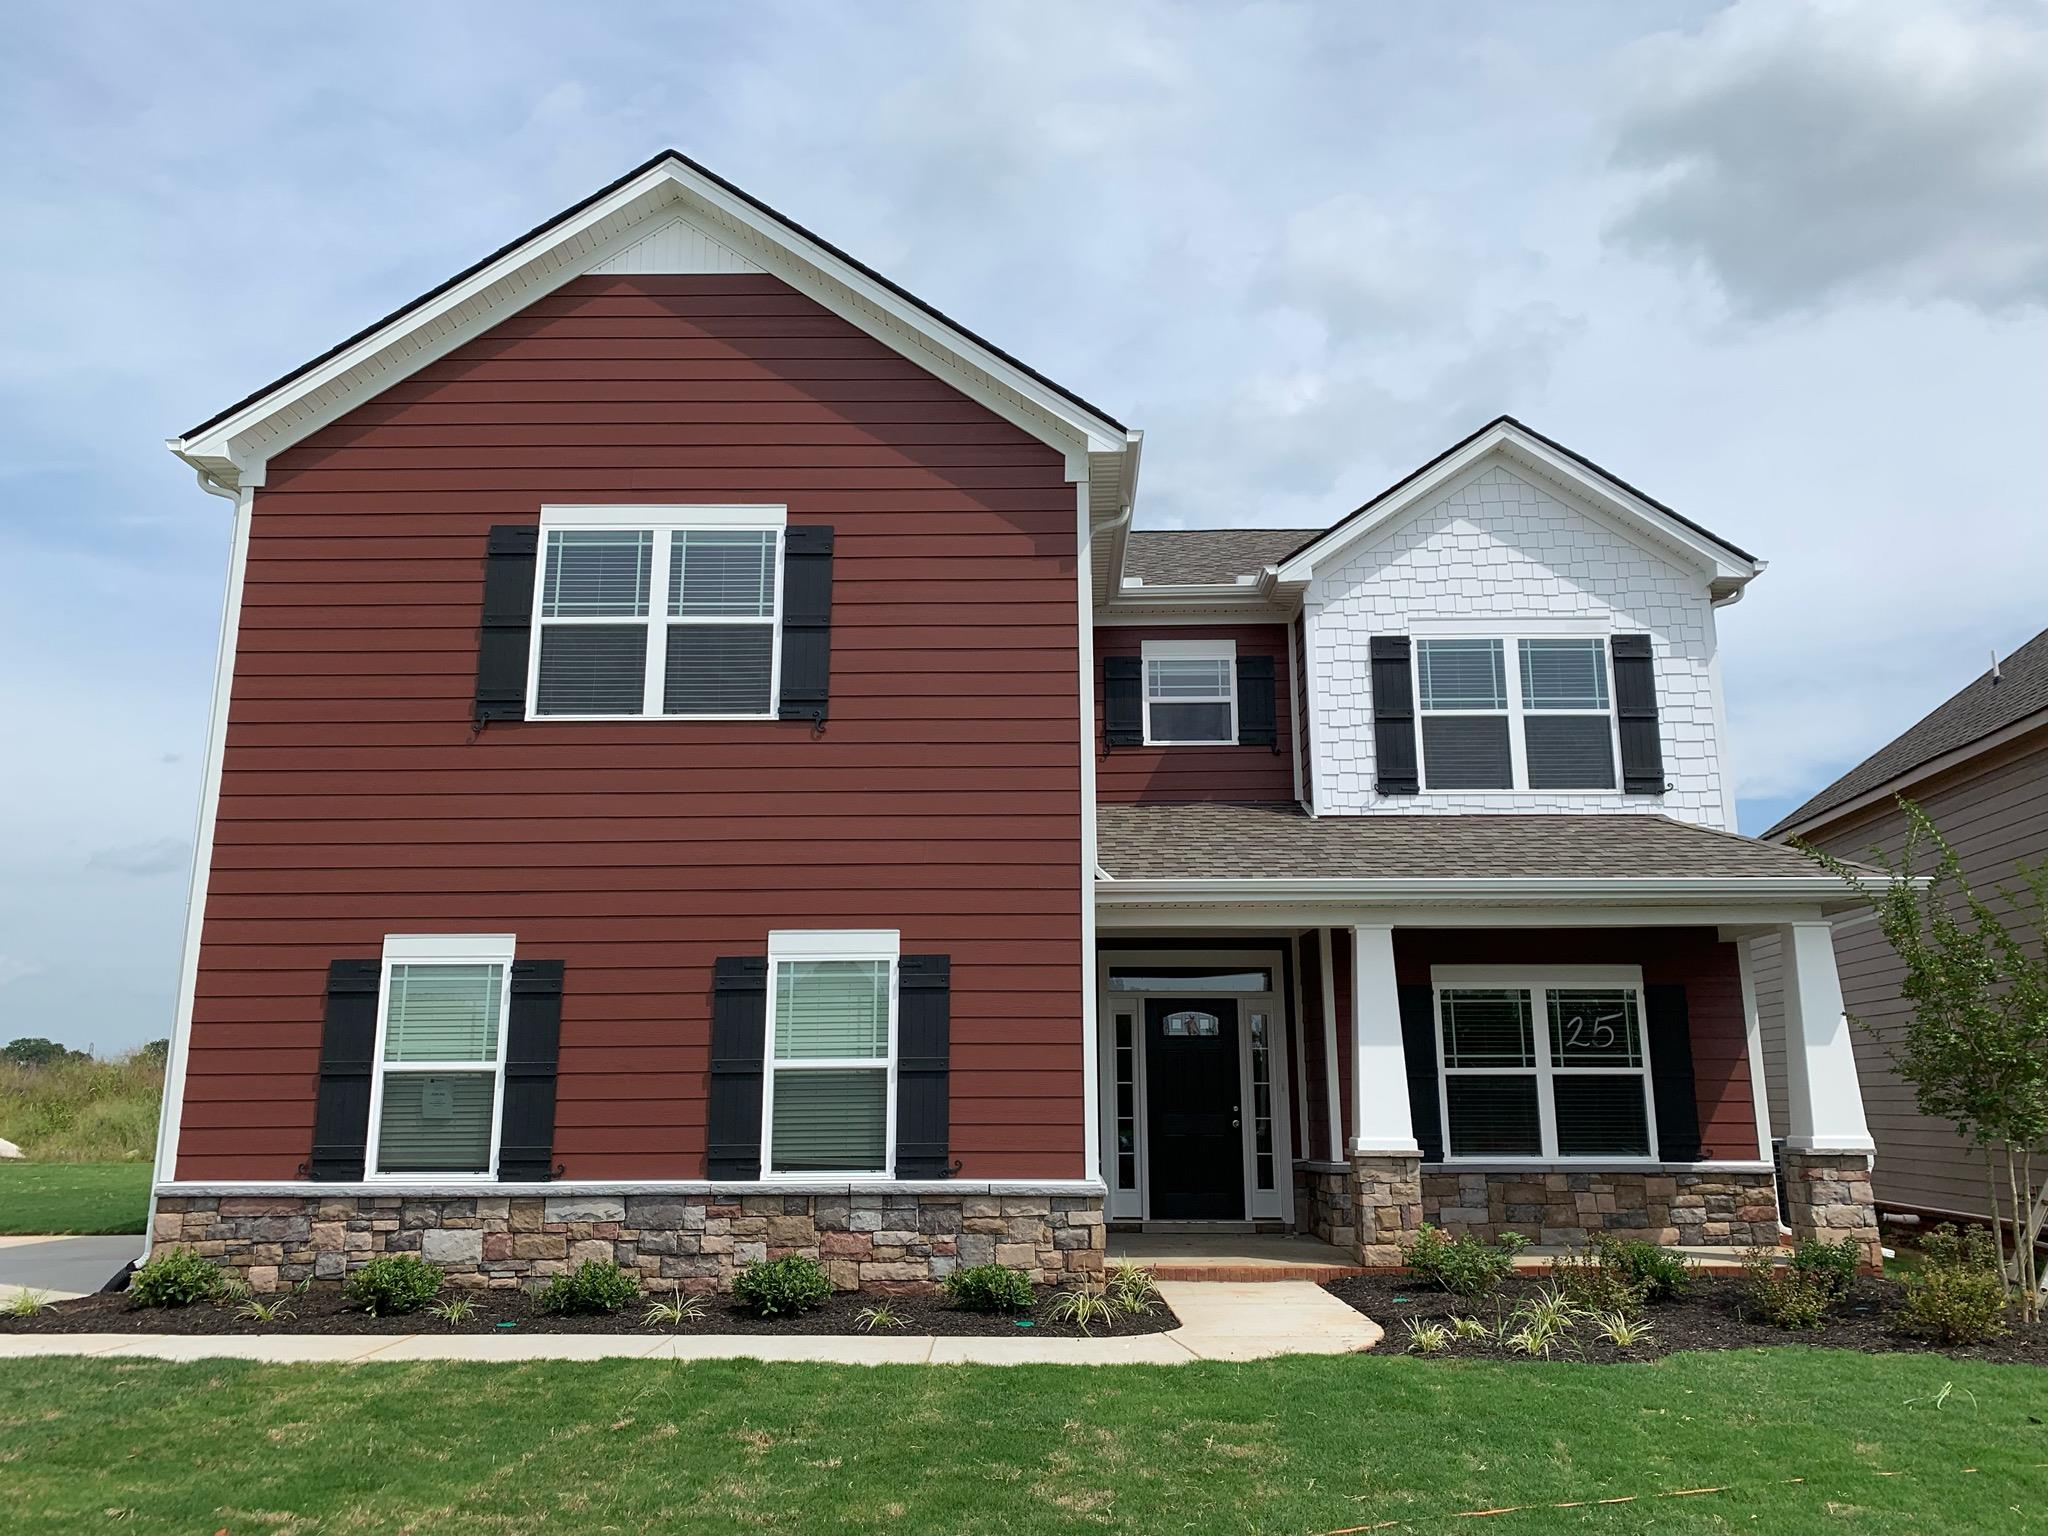 3403 Pear Blossom Way / Lt25, Murfreesboro, Tennessee